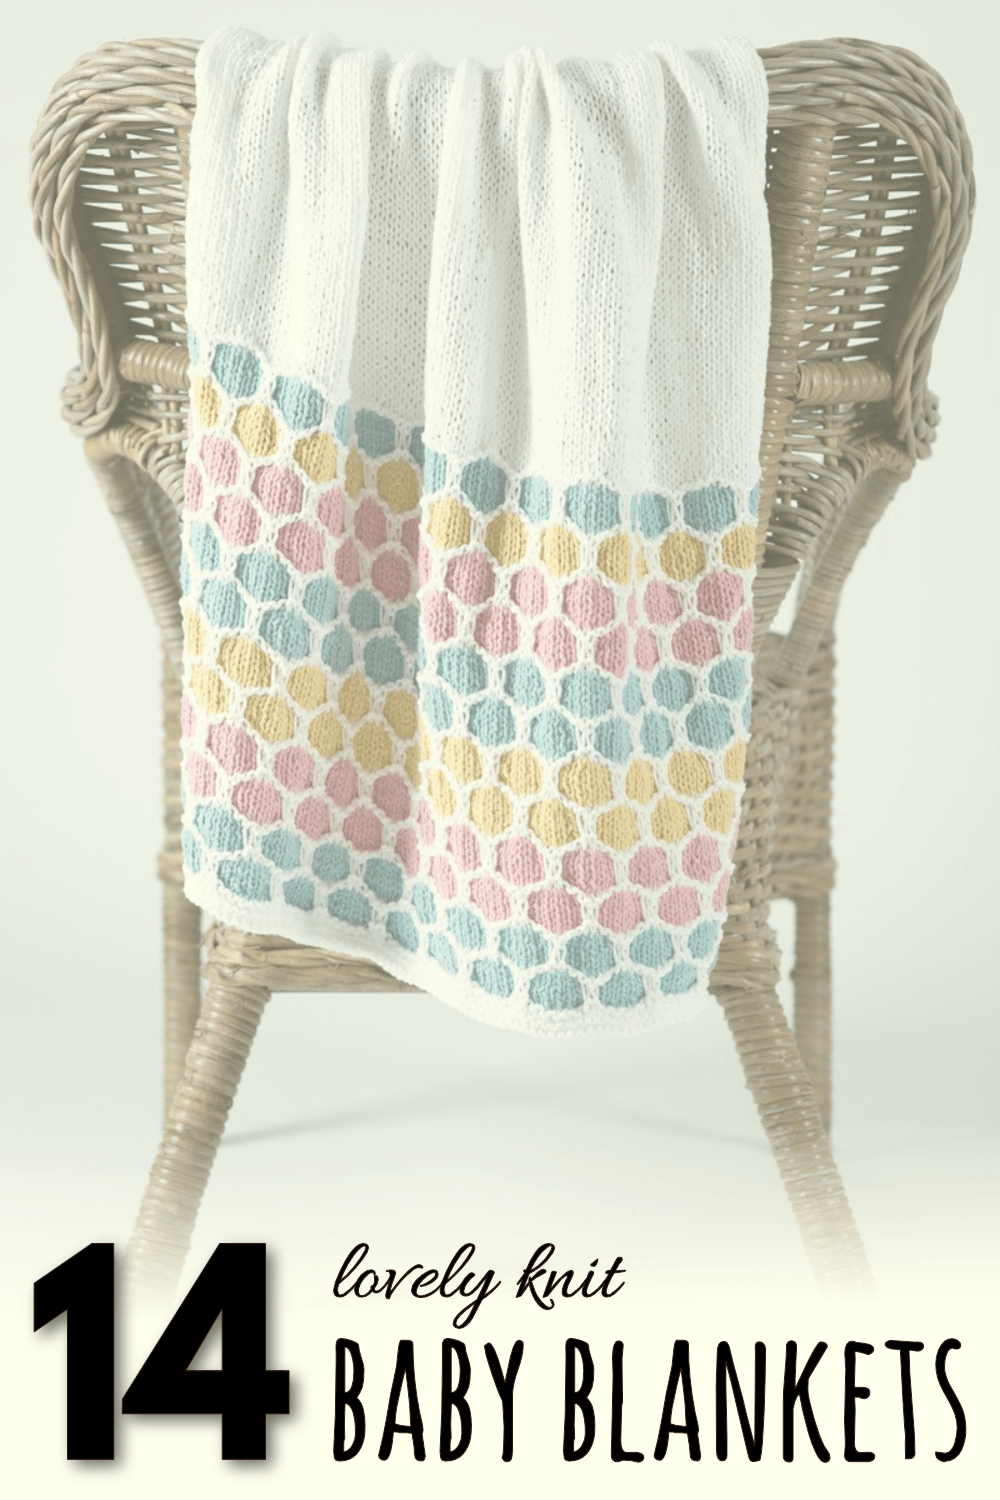 a list of 14 beginner friendly baby blanket knitting patterns. Com on over and dive in! #knitting #knittingpatterns #baby #blanket #beginner #easy